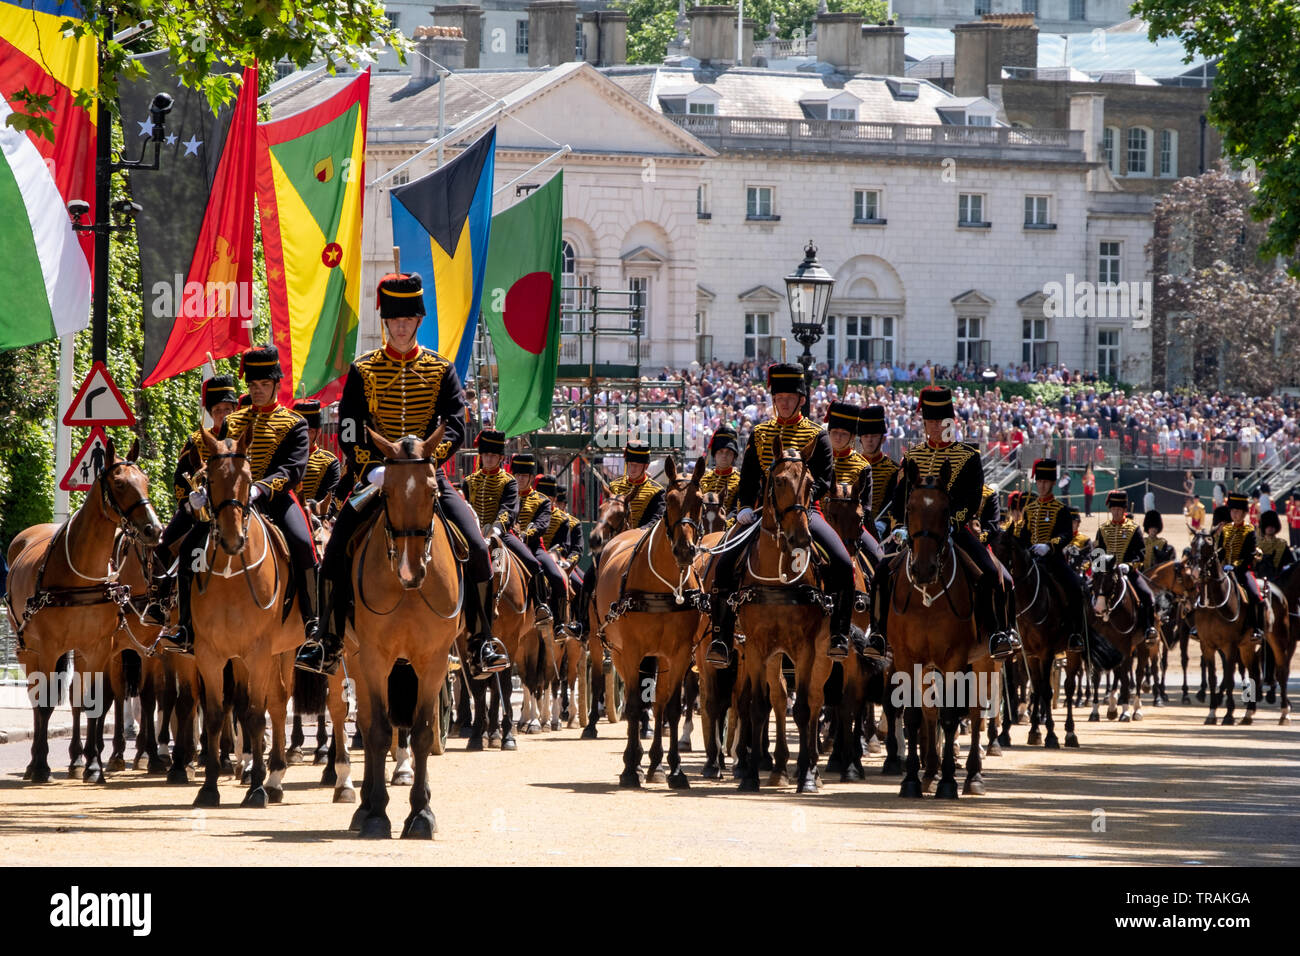 Horses at the Trooping the Colour military parade, London, for Queen Elizabeth's birthday. Horses are part of the British Royal Household Cavalry, - Stock Image